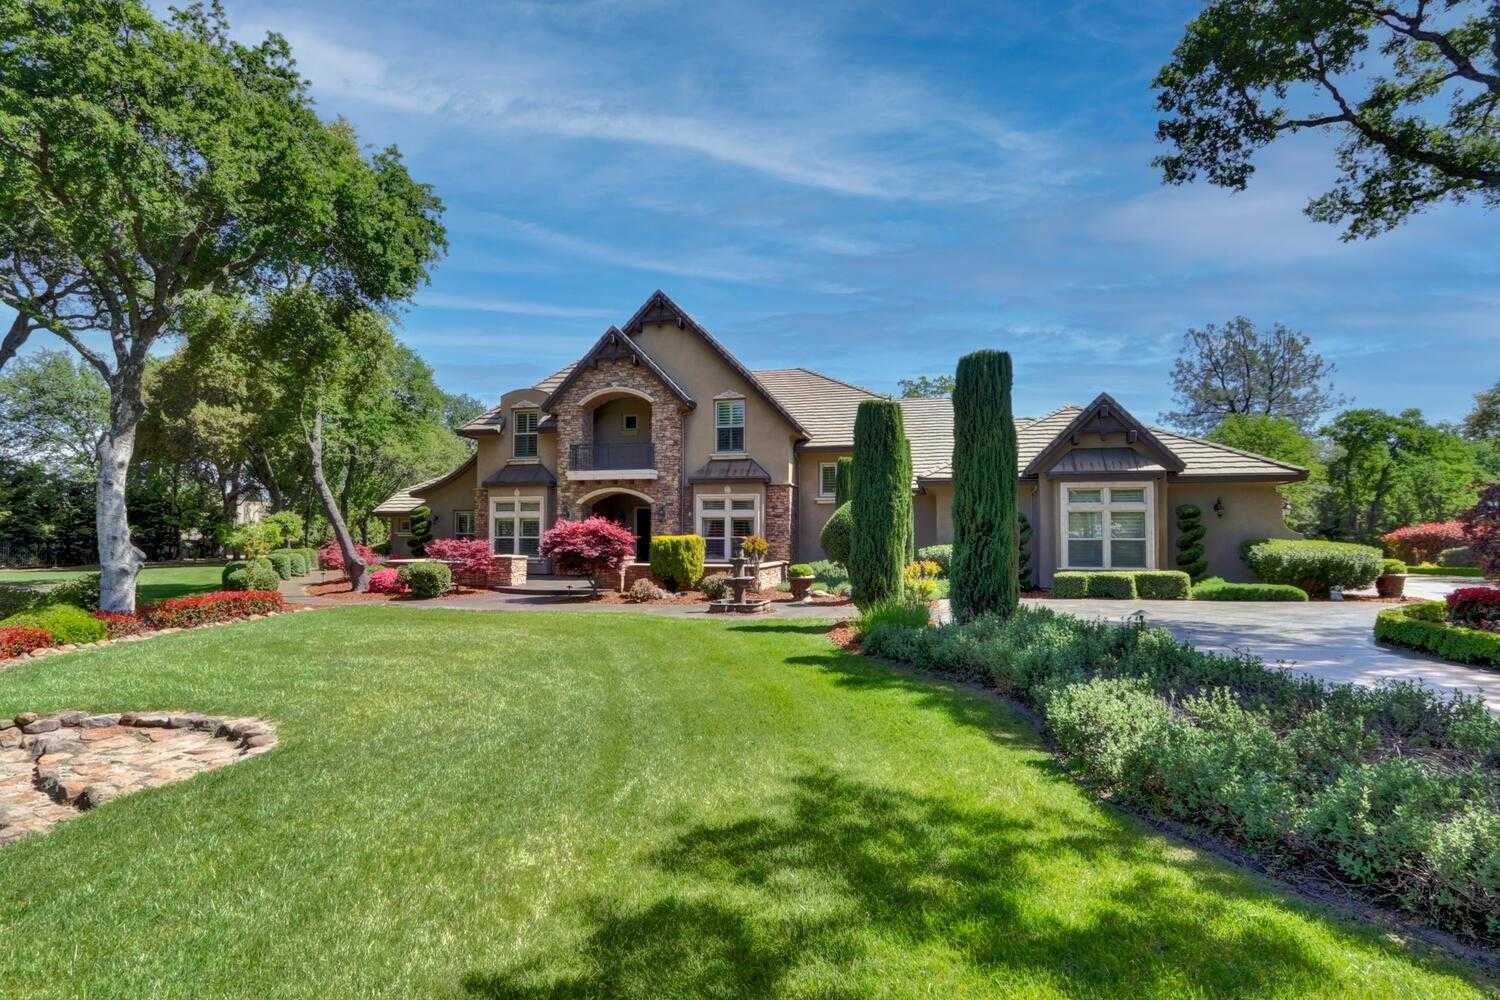 $2,995,000 - 5Br/6Ba -  for Sale in Monte Claire, Loomis